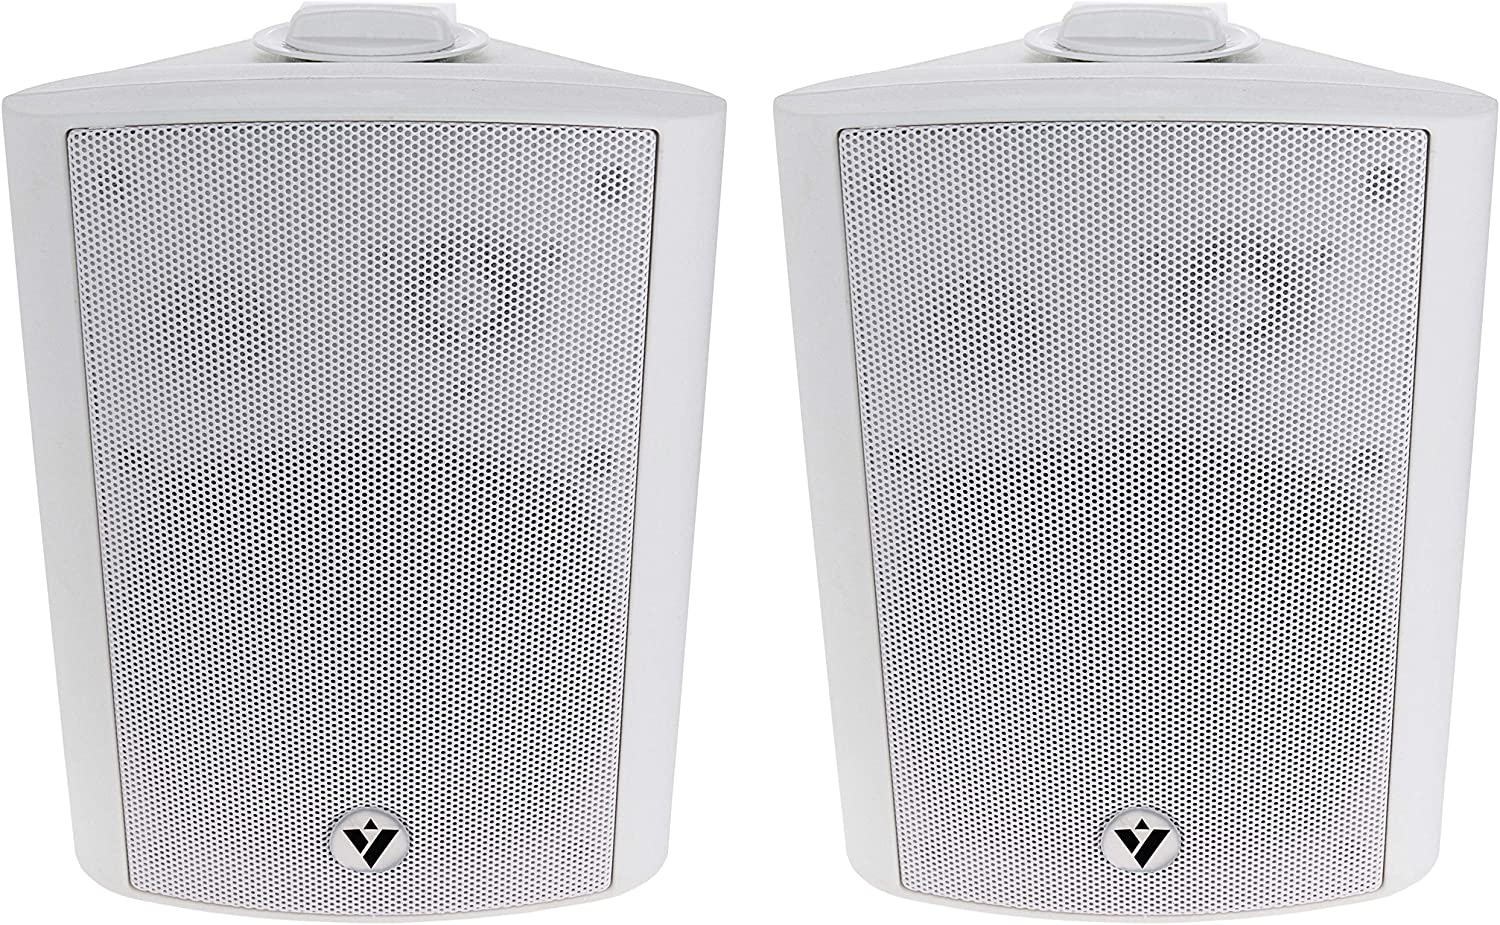 """Voyz 5 1/4"""" White Architectural Speakers -70V 100V Wall Speakers Pair of 2 Indoor and Outdoor 2-Way Passive Loudspeakers 